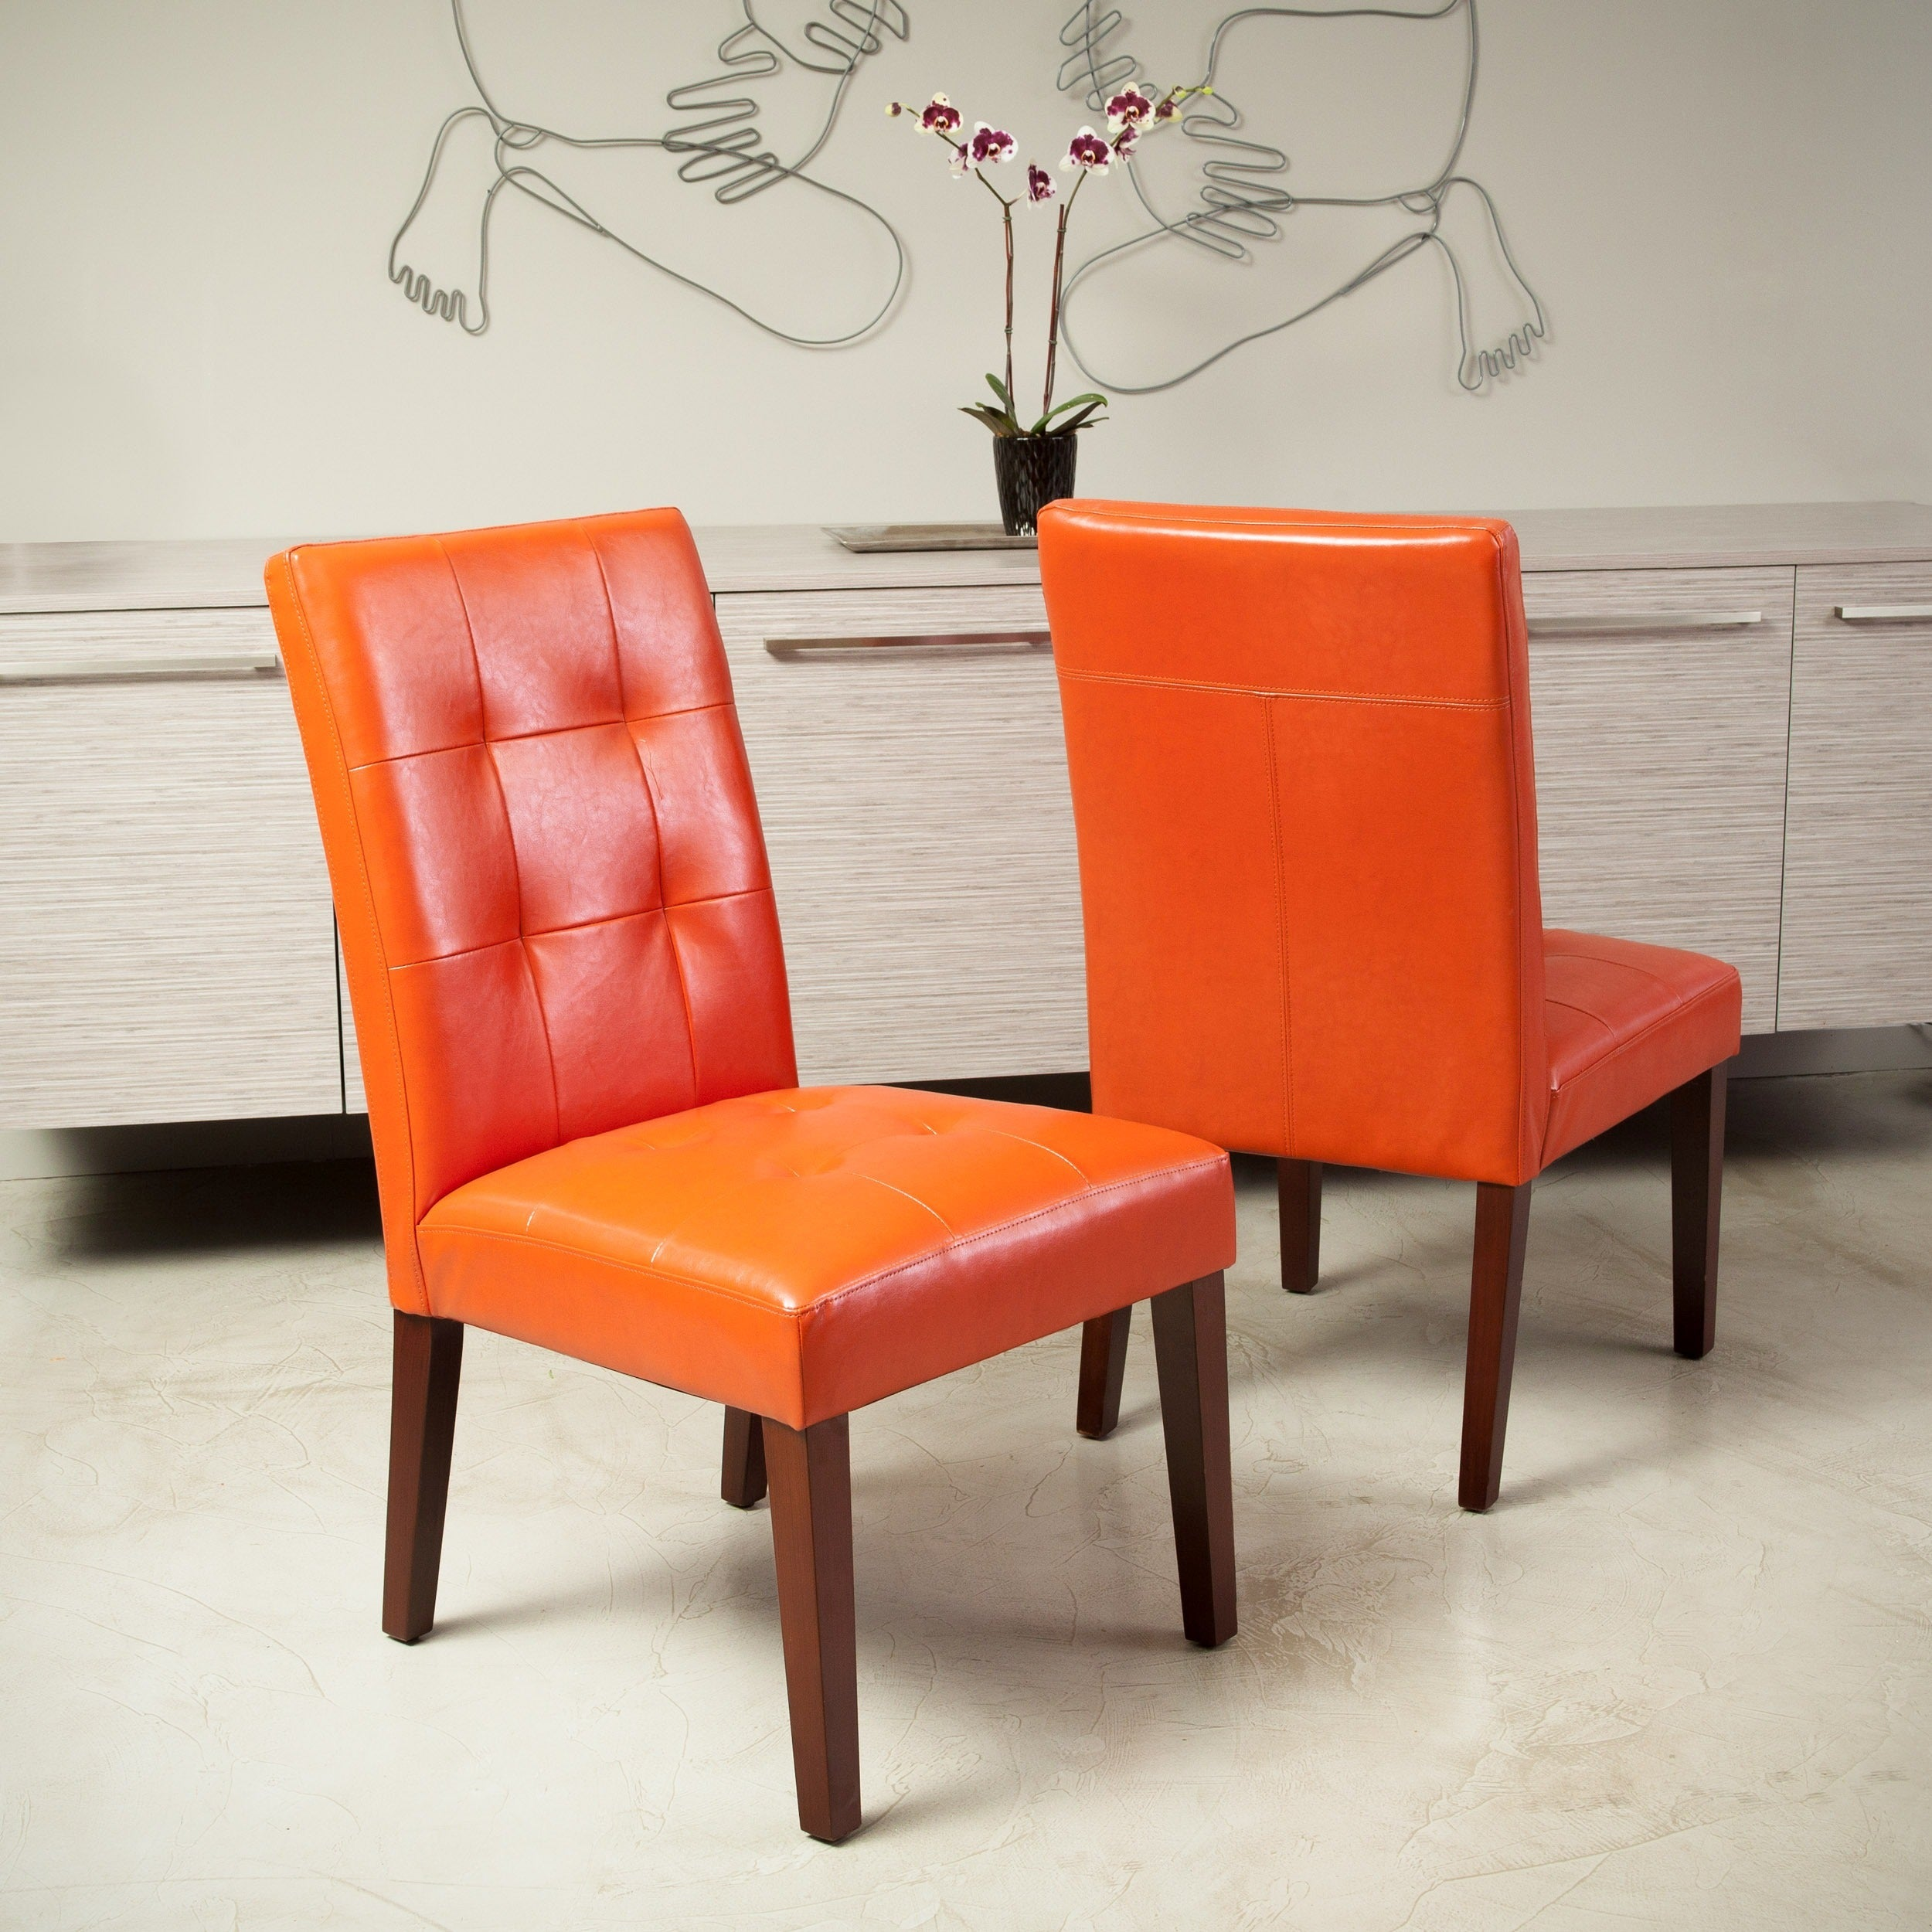 cambridge tufted orange bonded leather dining chair (set of ) bychristopher knight home  free shipping today  overstockcom  . cambridge tufted orange bonded leather dining chair (set of ) by